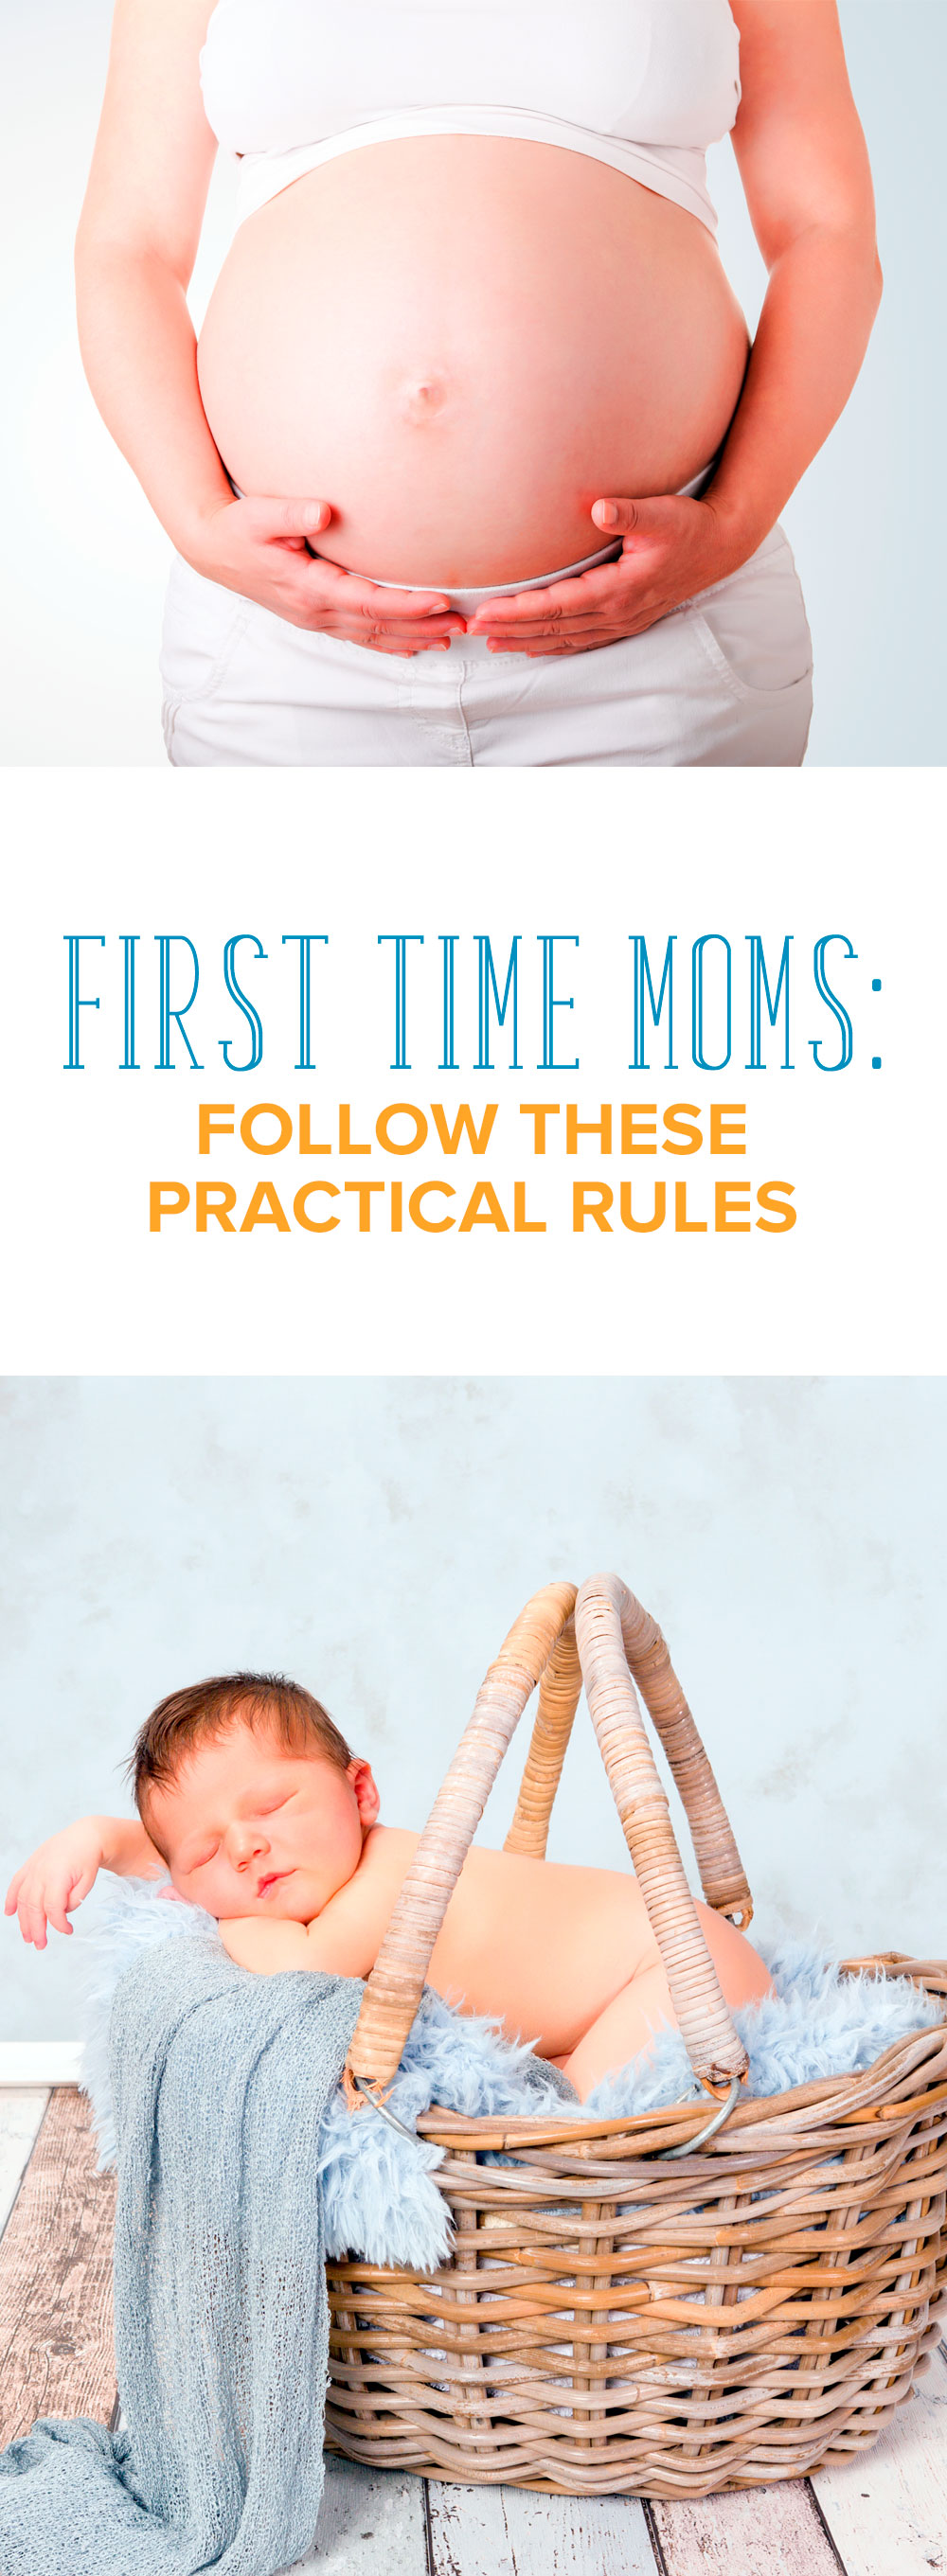 Are you pregnant and a first time mommy to be? Parenthood can feel overwhelming. Get the practical advice for first time moms you need to hear.